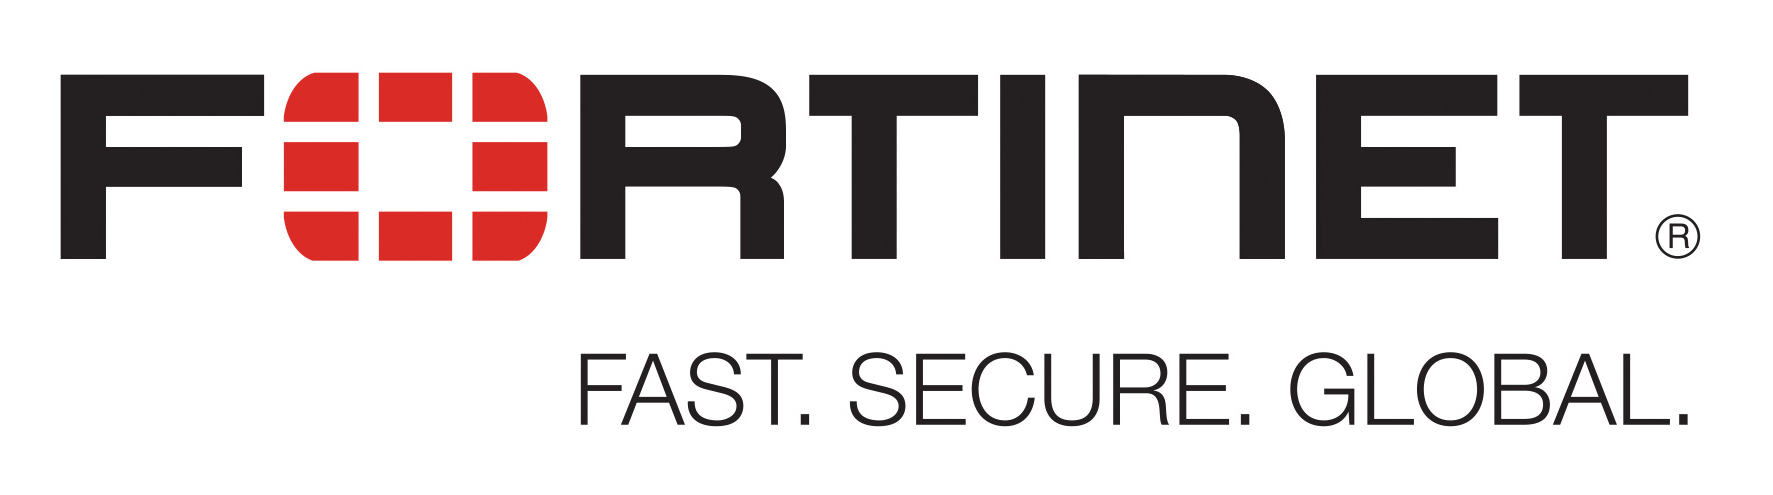 Secure Trend 2015